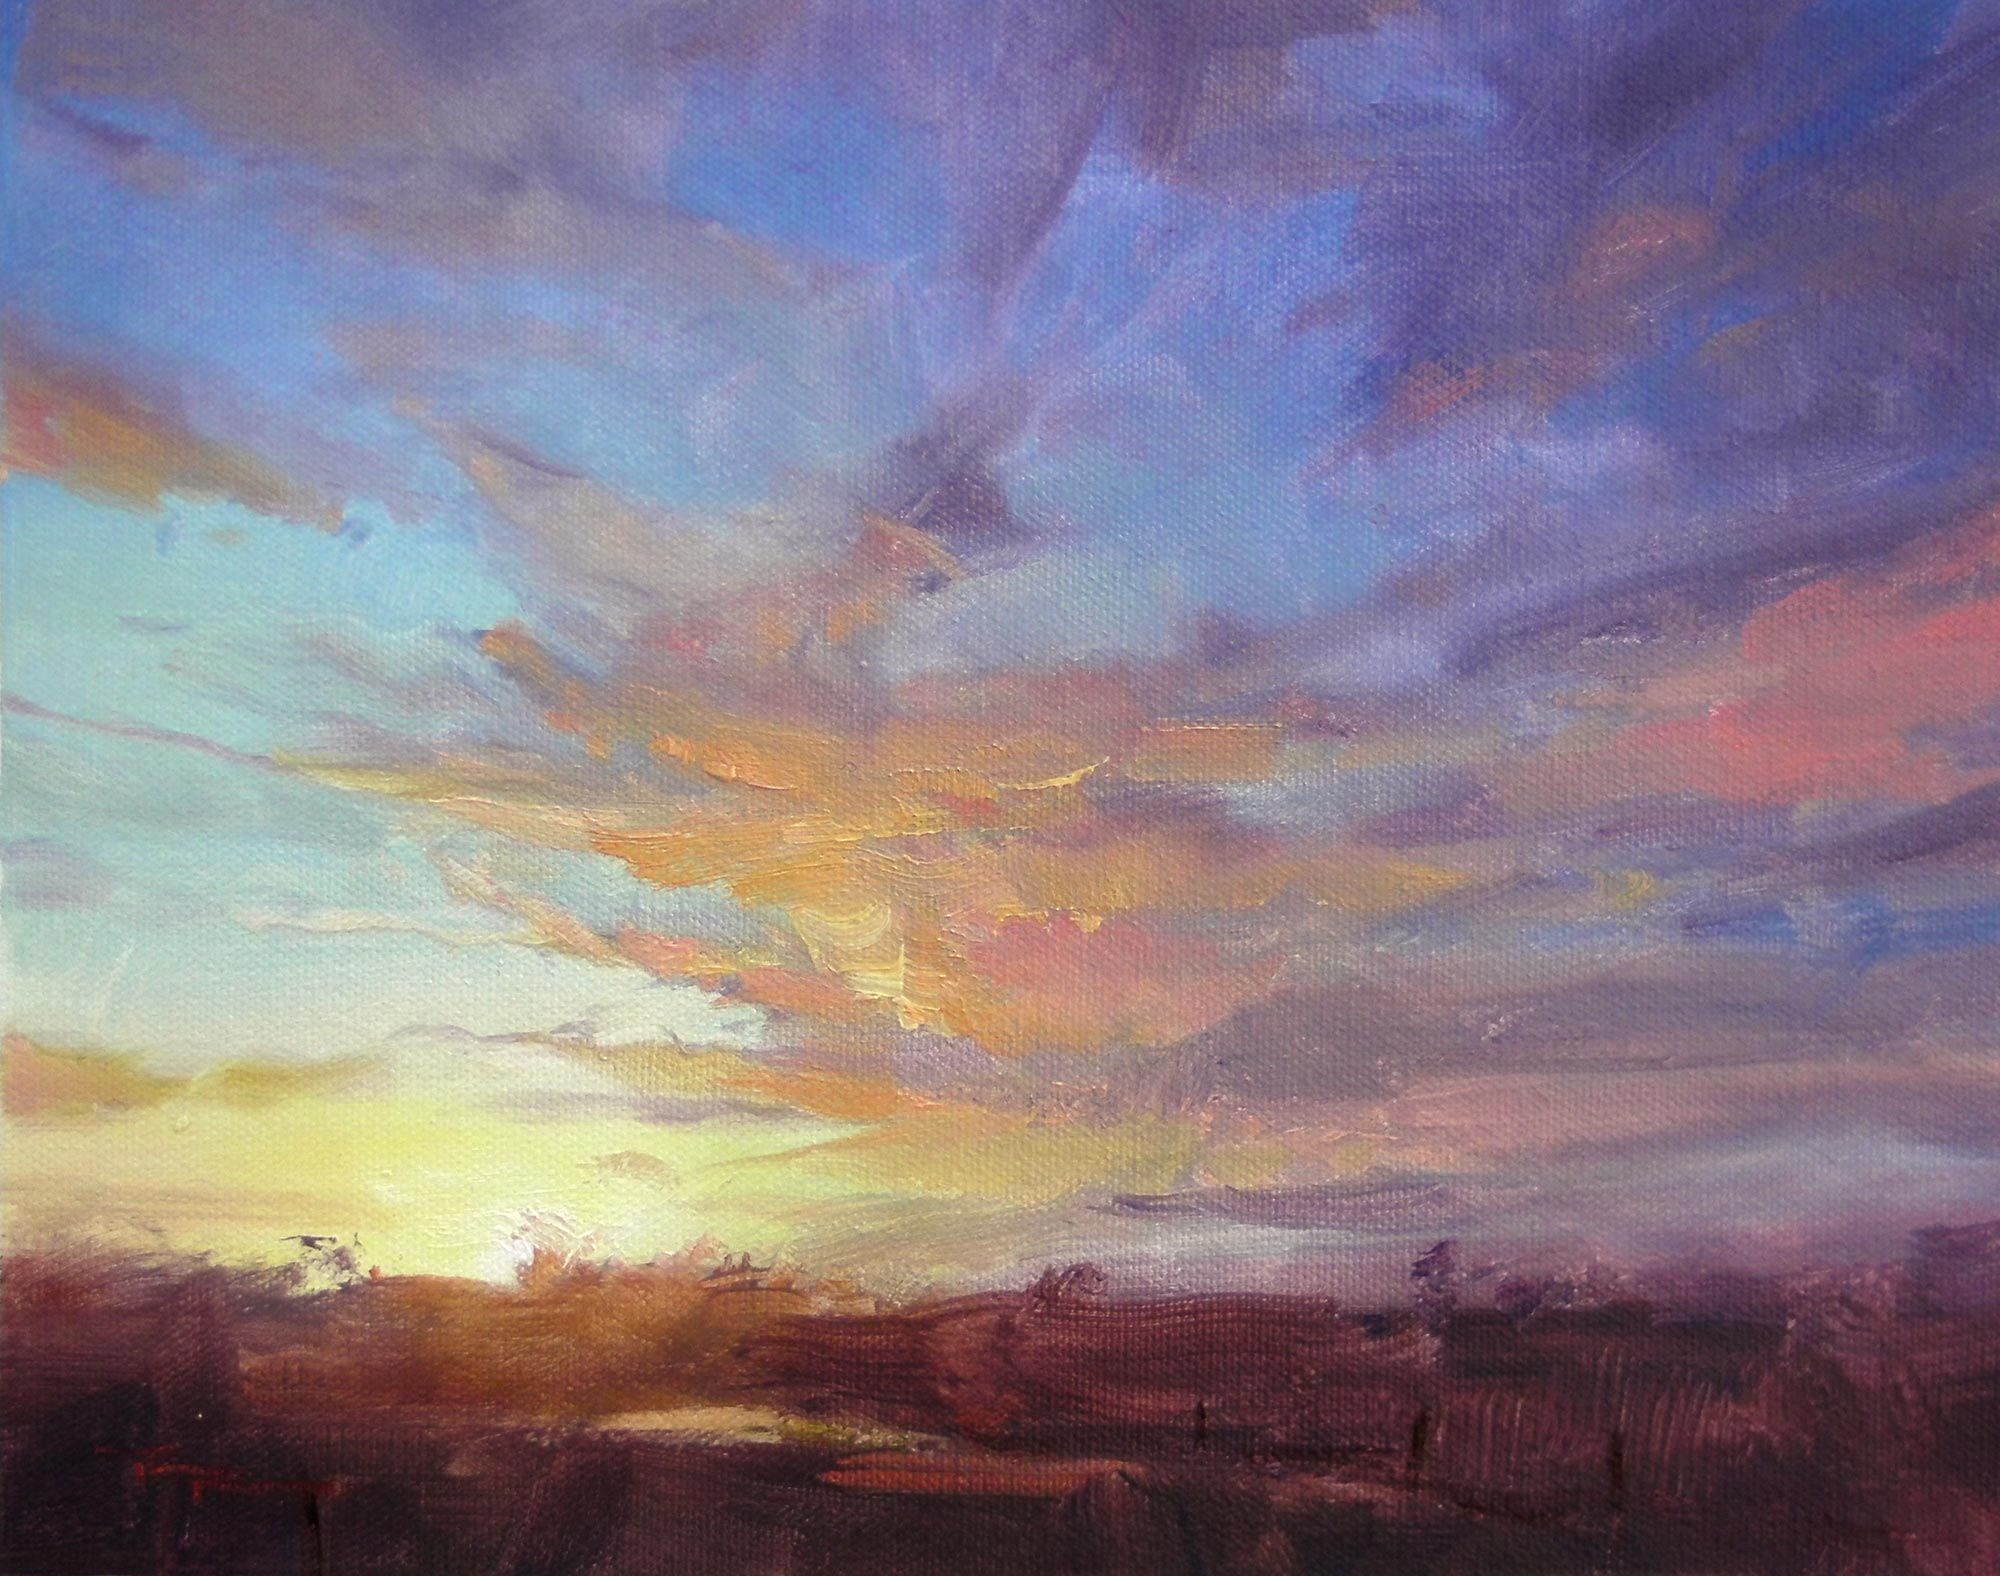 Online Painting Workshop 25 : Mastering Sunsets 1 of 4.